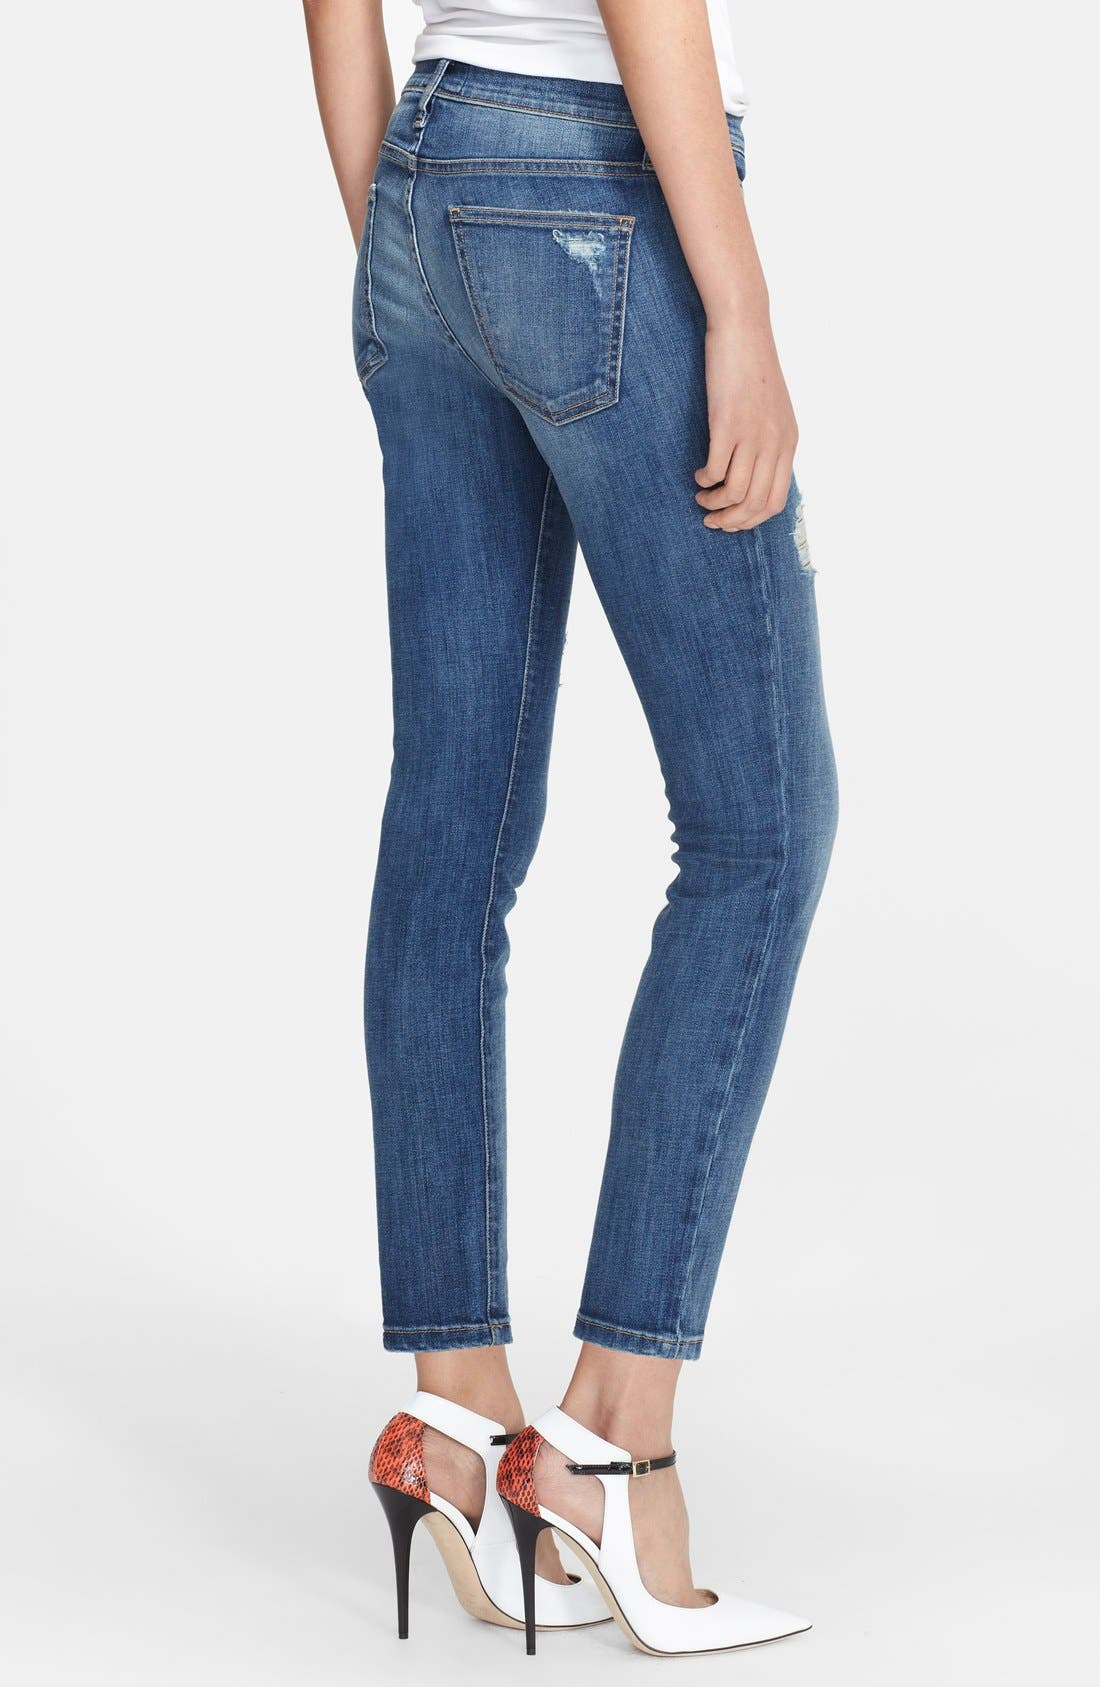 Alternate Image 2  - Current/Elliott 'The Stiletto' Destroyed Skinny Jeans (Niagara Destroy) (Nordstrom Exclusive)